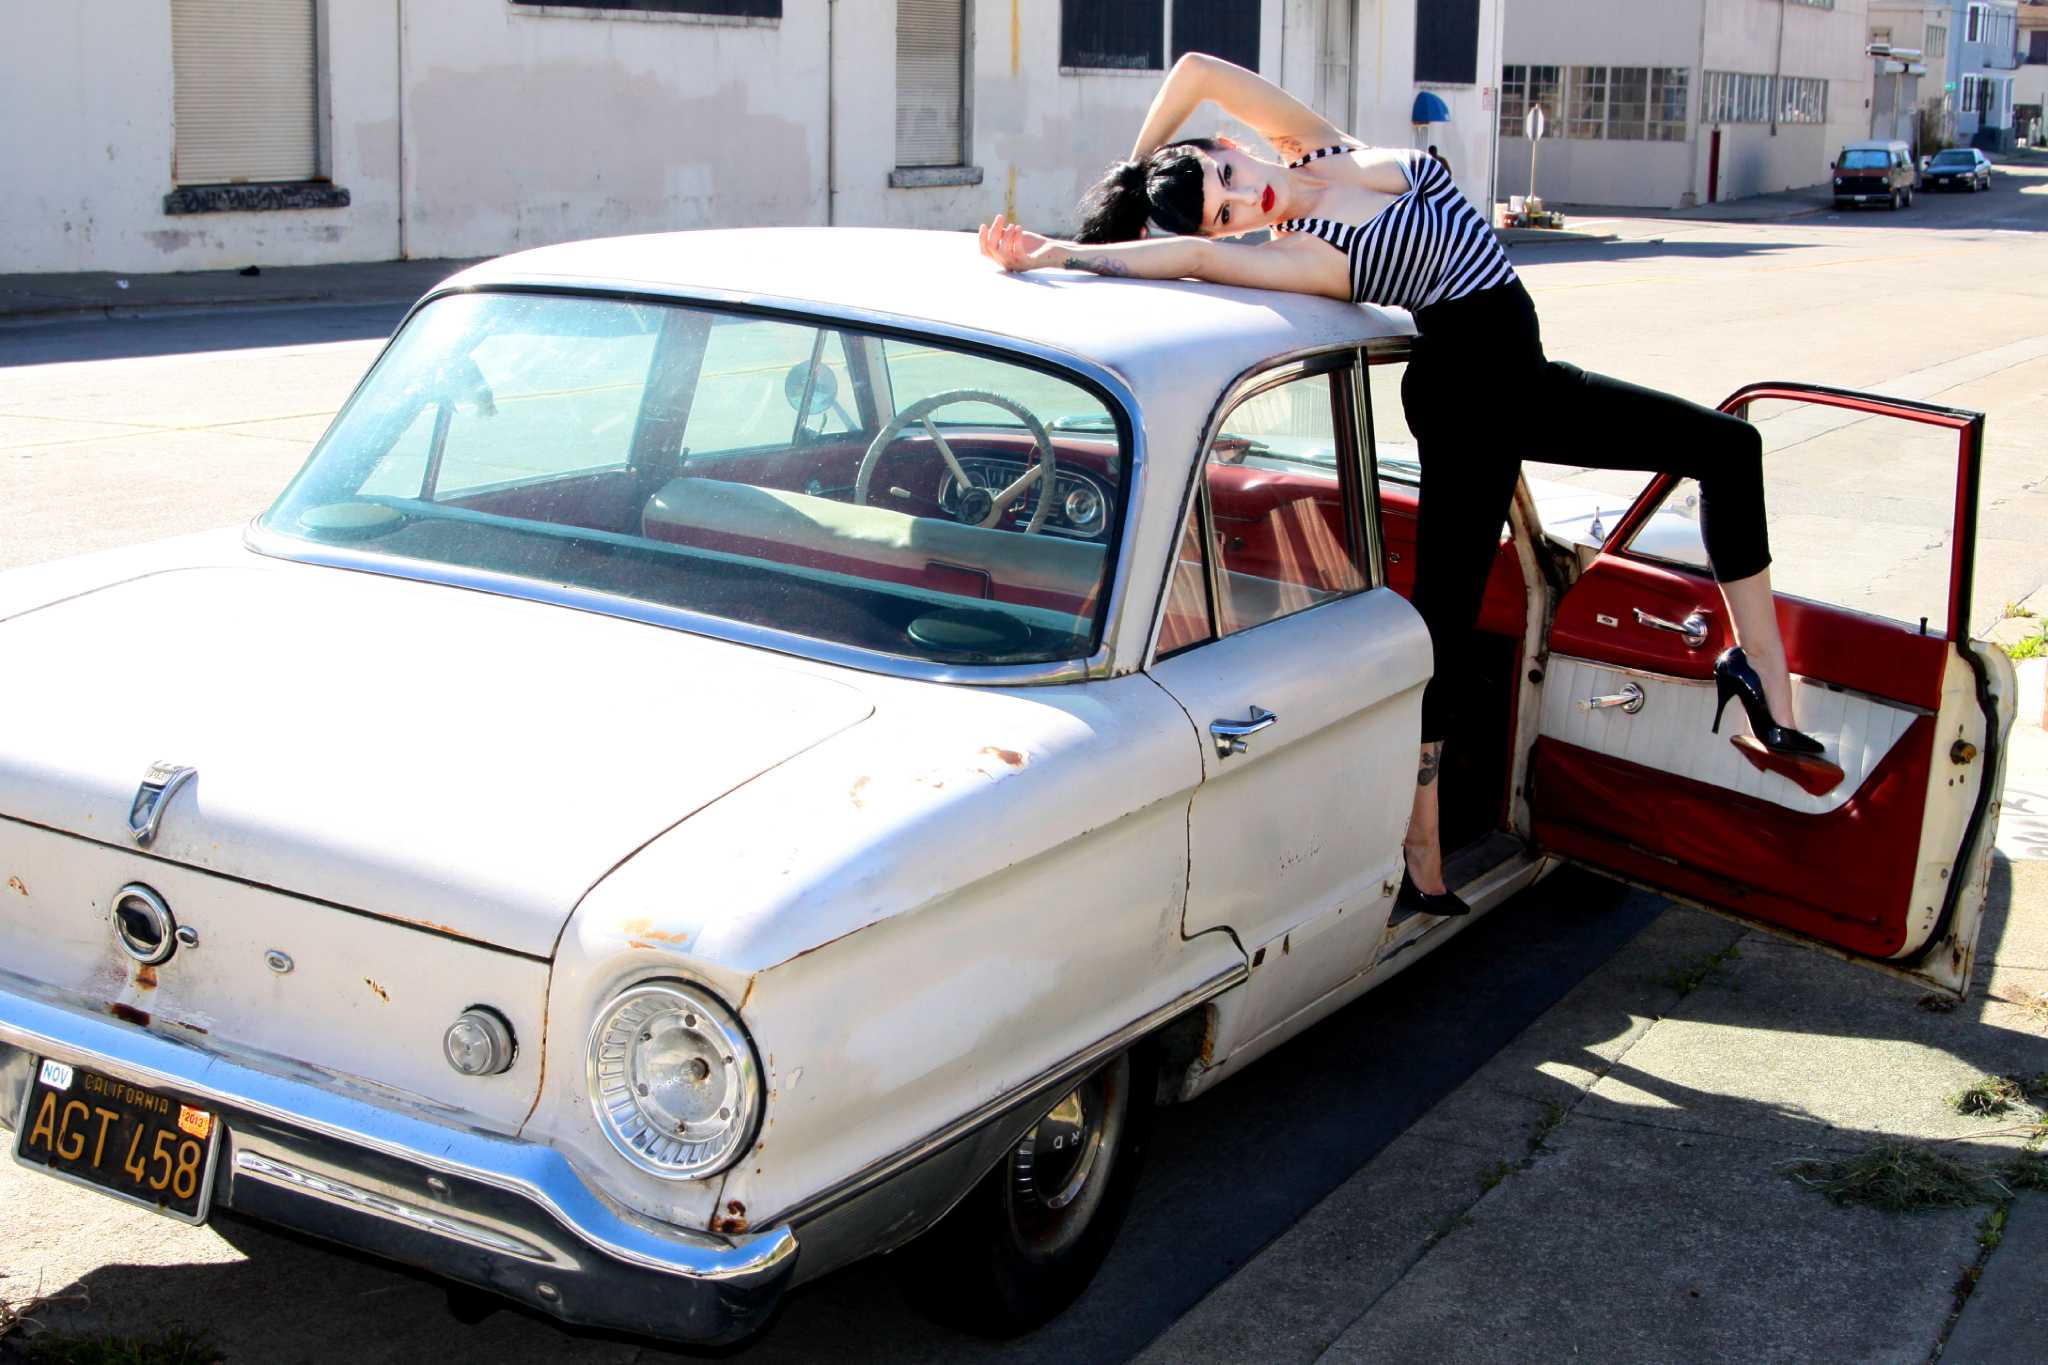 1962 Ford Falcon model's daily driver - Houston Chronicle